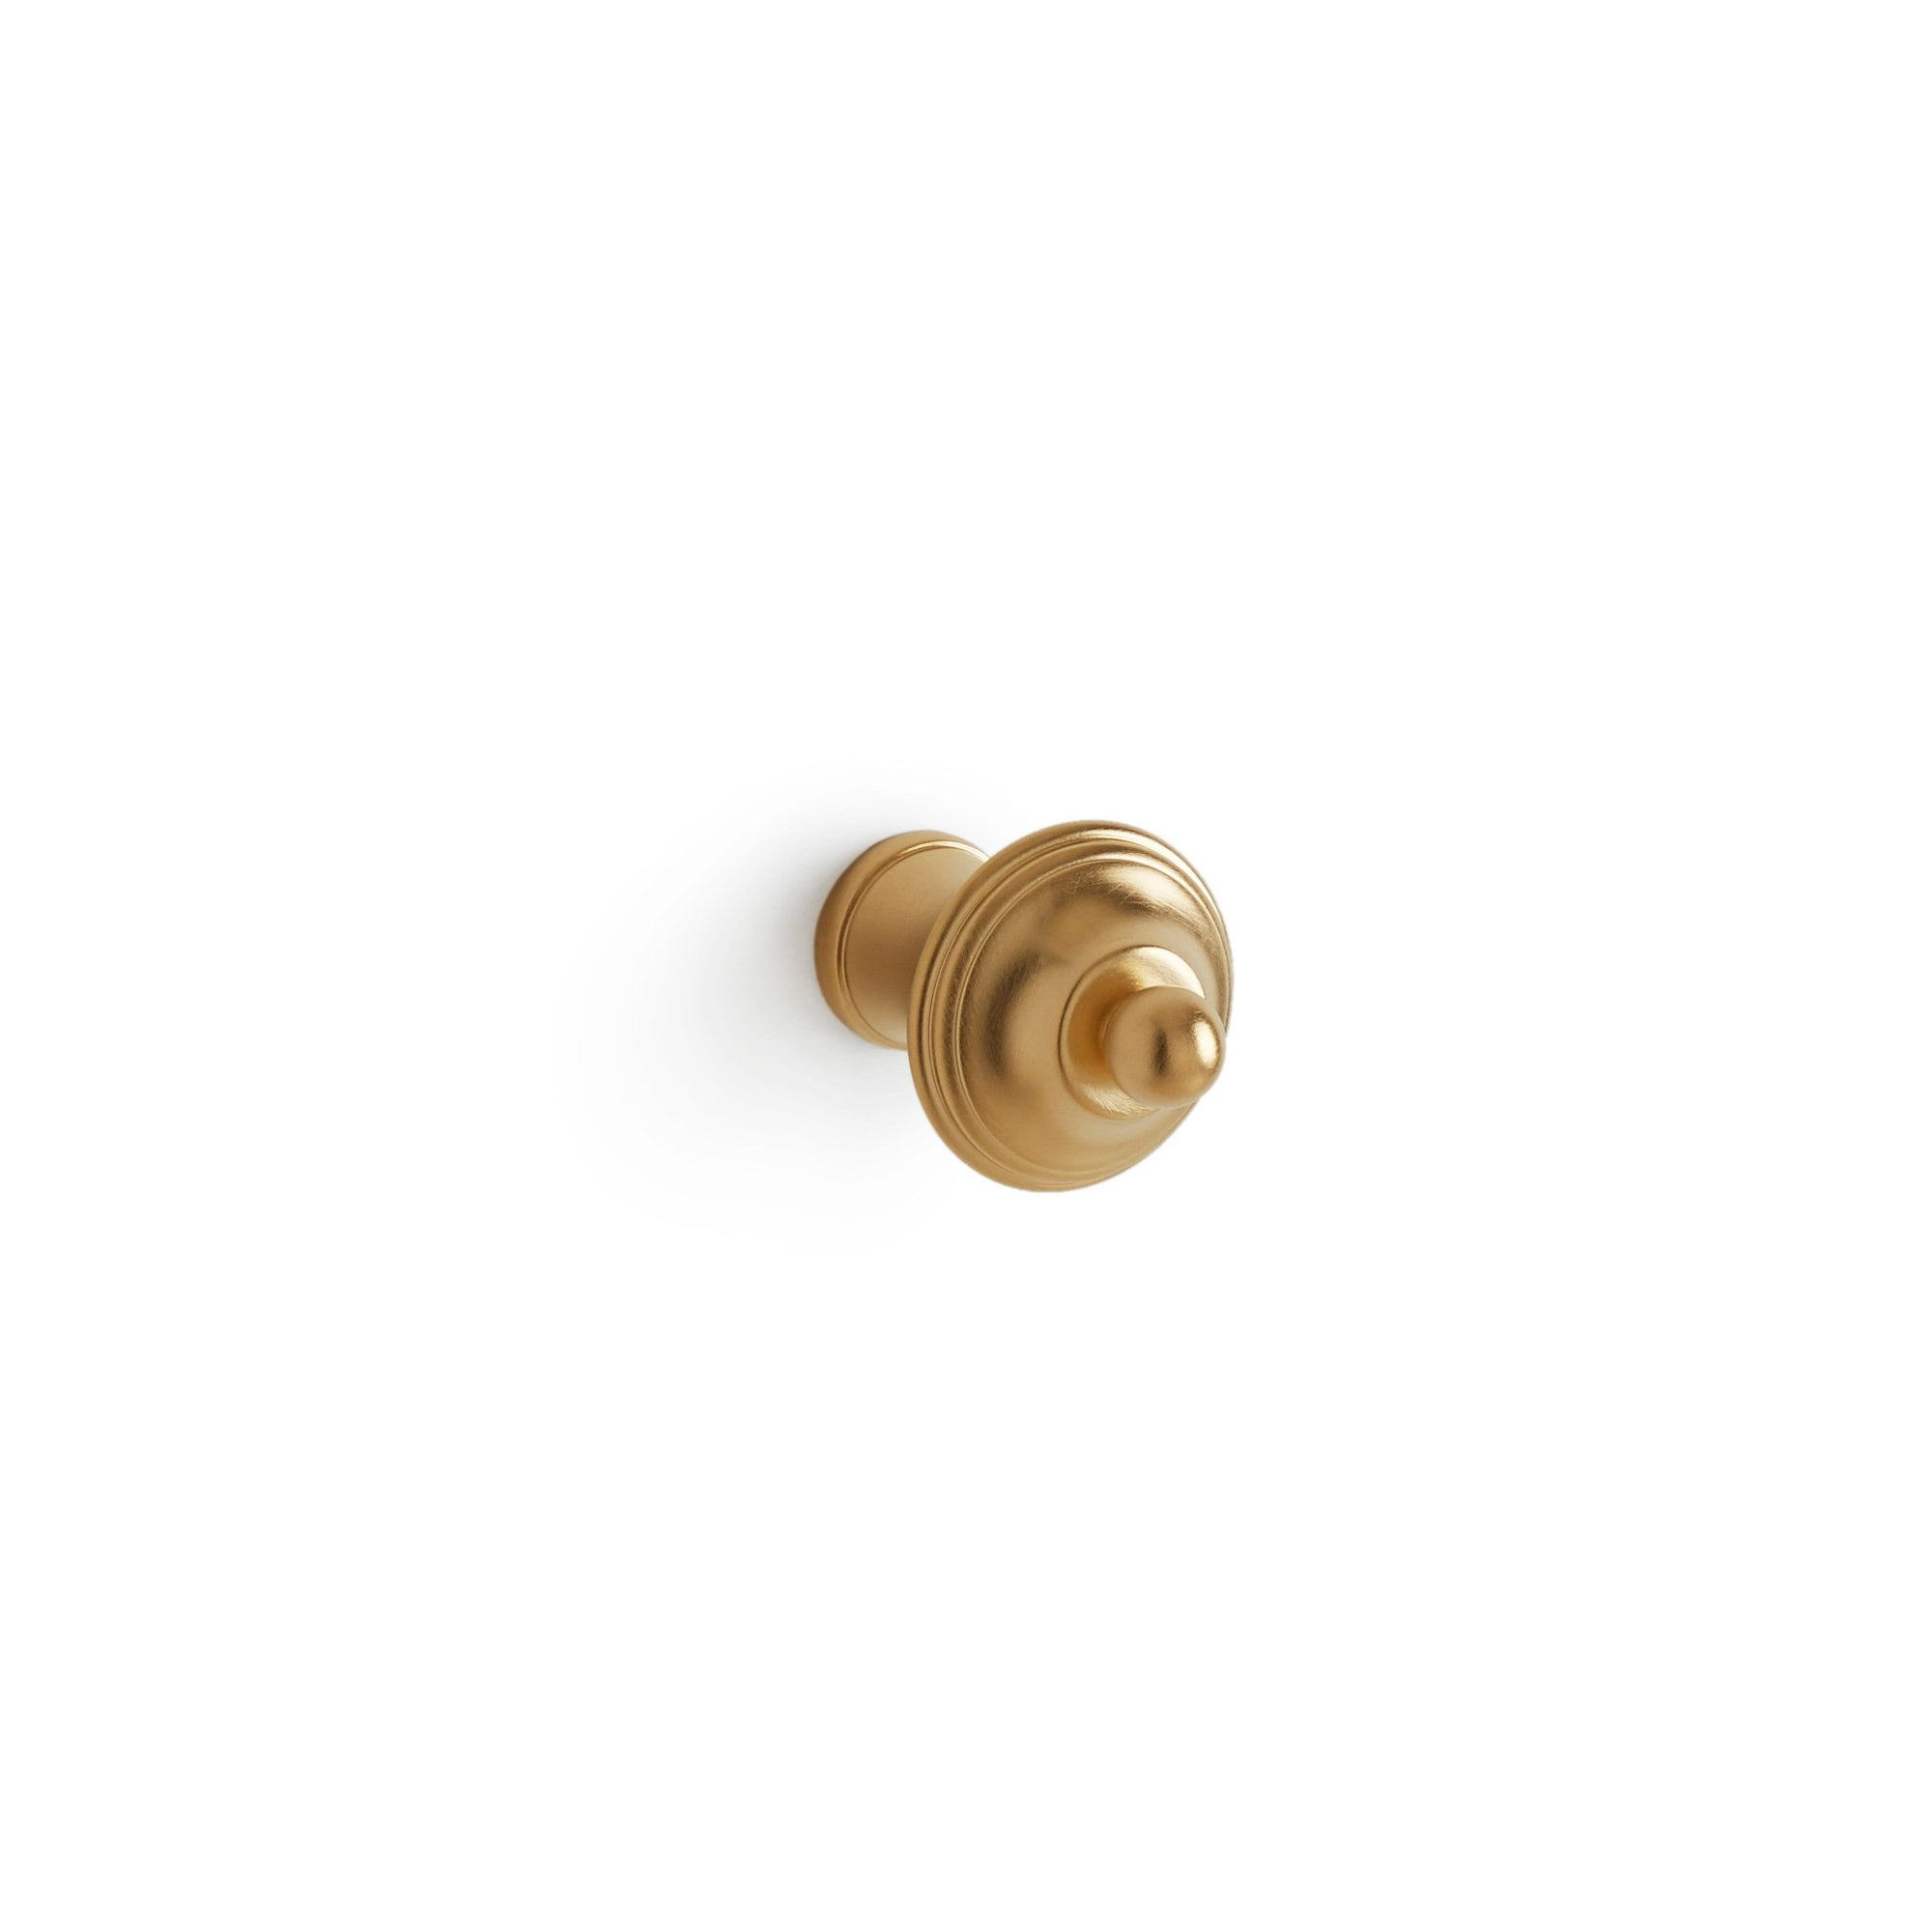 0008-1-GP Sherle Wagner International Grey Series II Cabinet & Drawer Knob in Gold Plate metal finish